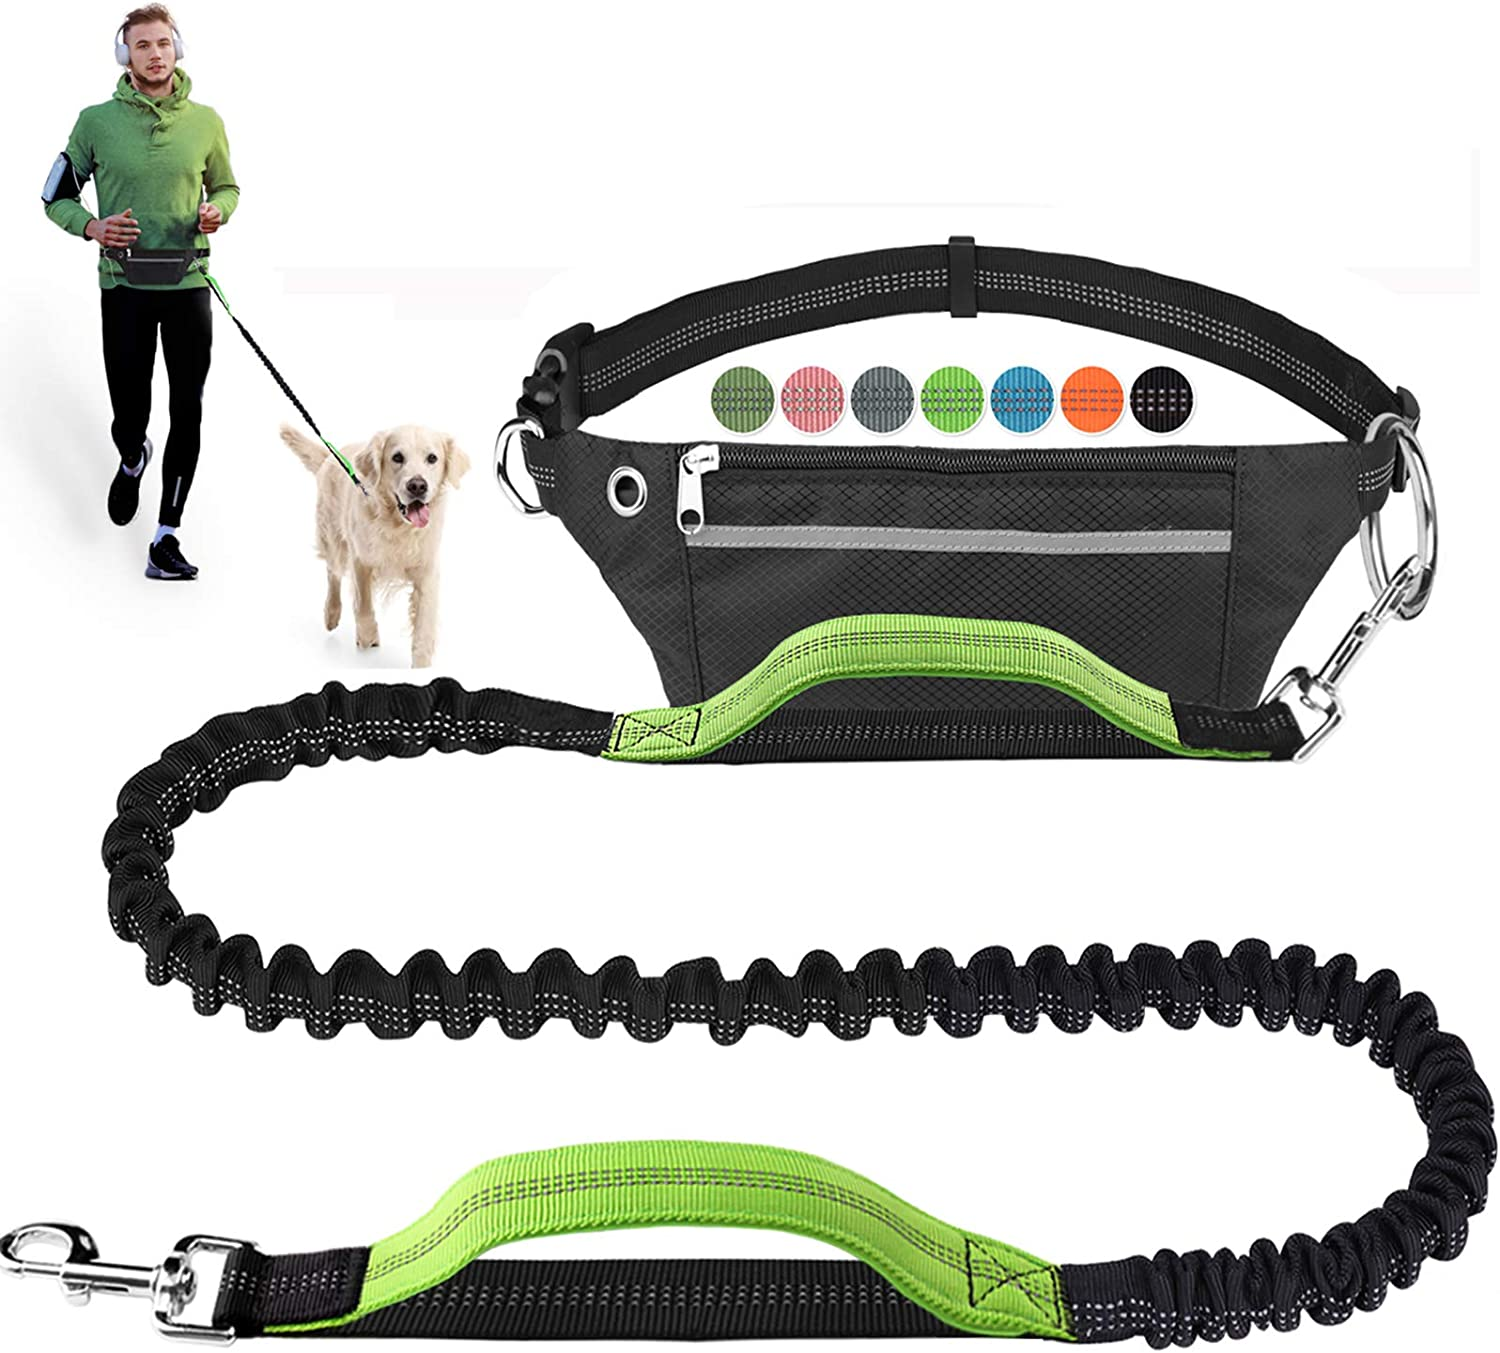 Ablita Dog Leash for Running Training Walking Hands-Free Retractable Dog Leash Wrist Belt Strap Hands-Free Leash for Dogs Cat